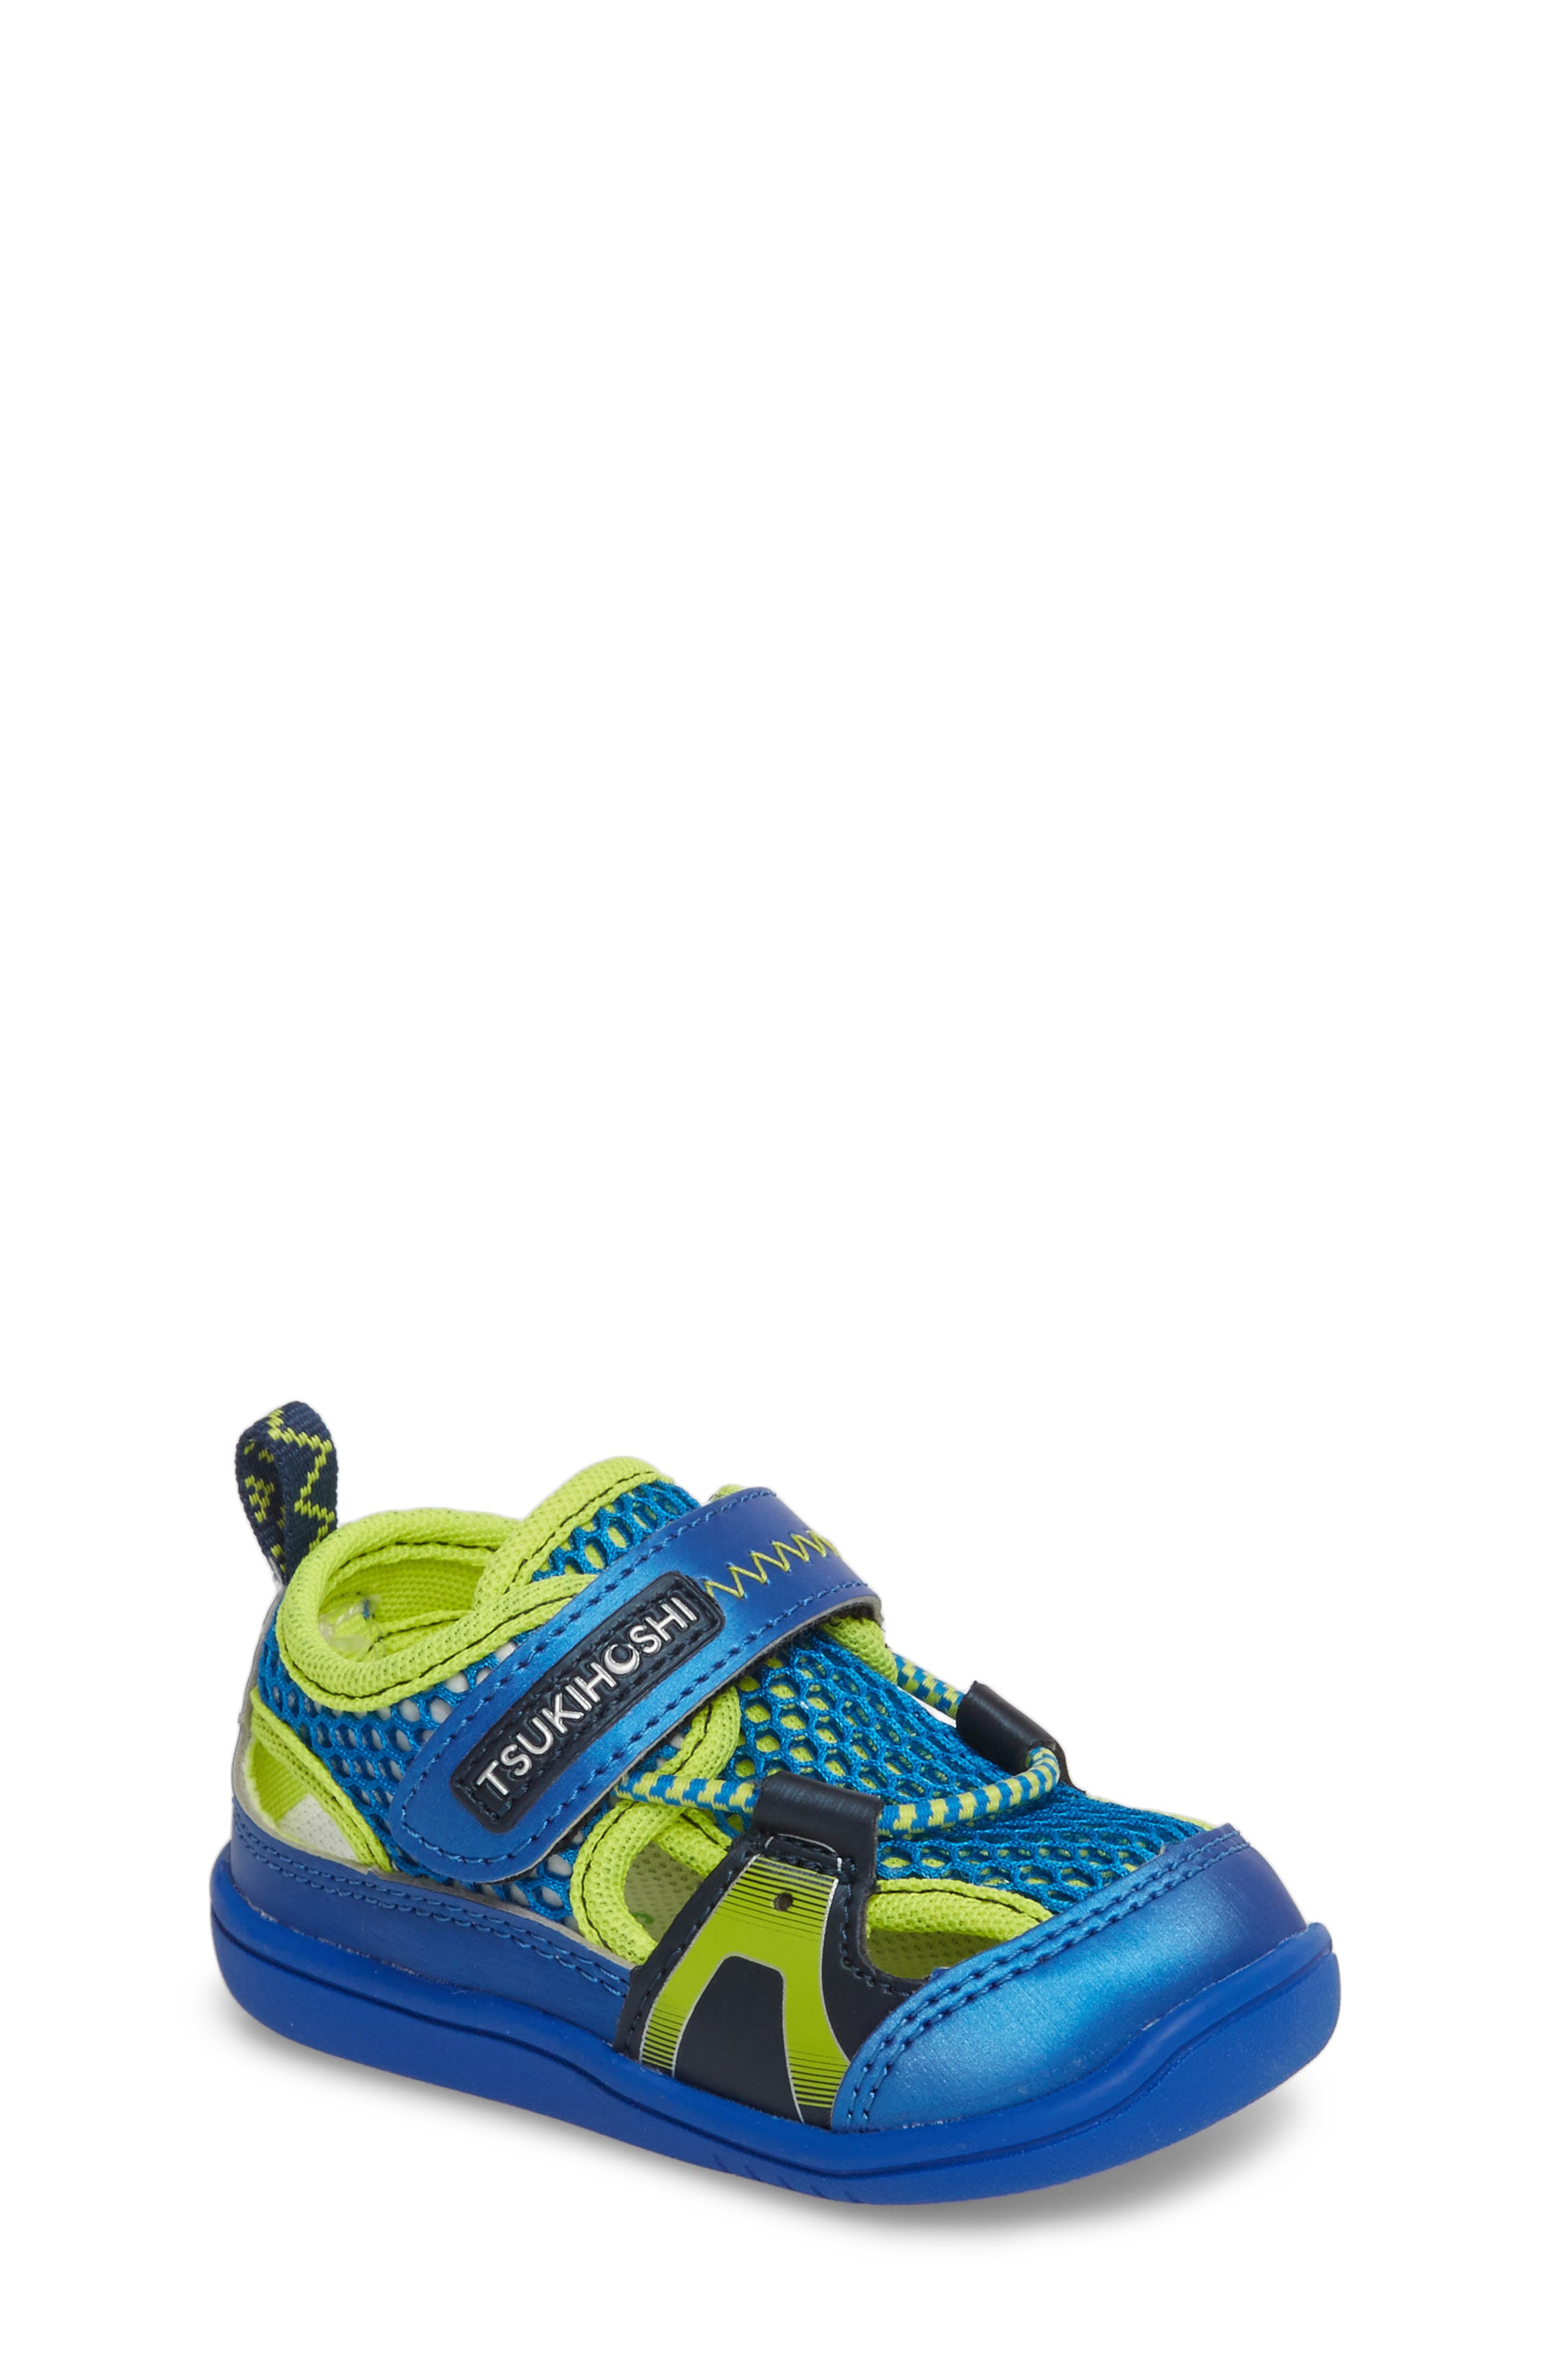 Ibiza Washable Sandal,                             Main thumbnail 1, color,                             ROYAL/ LIME